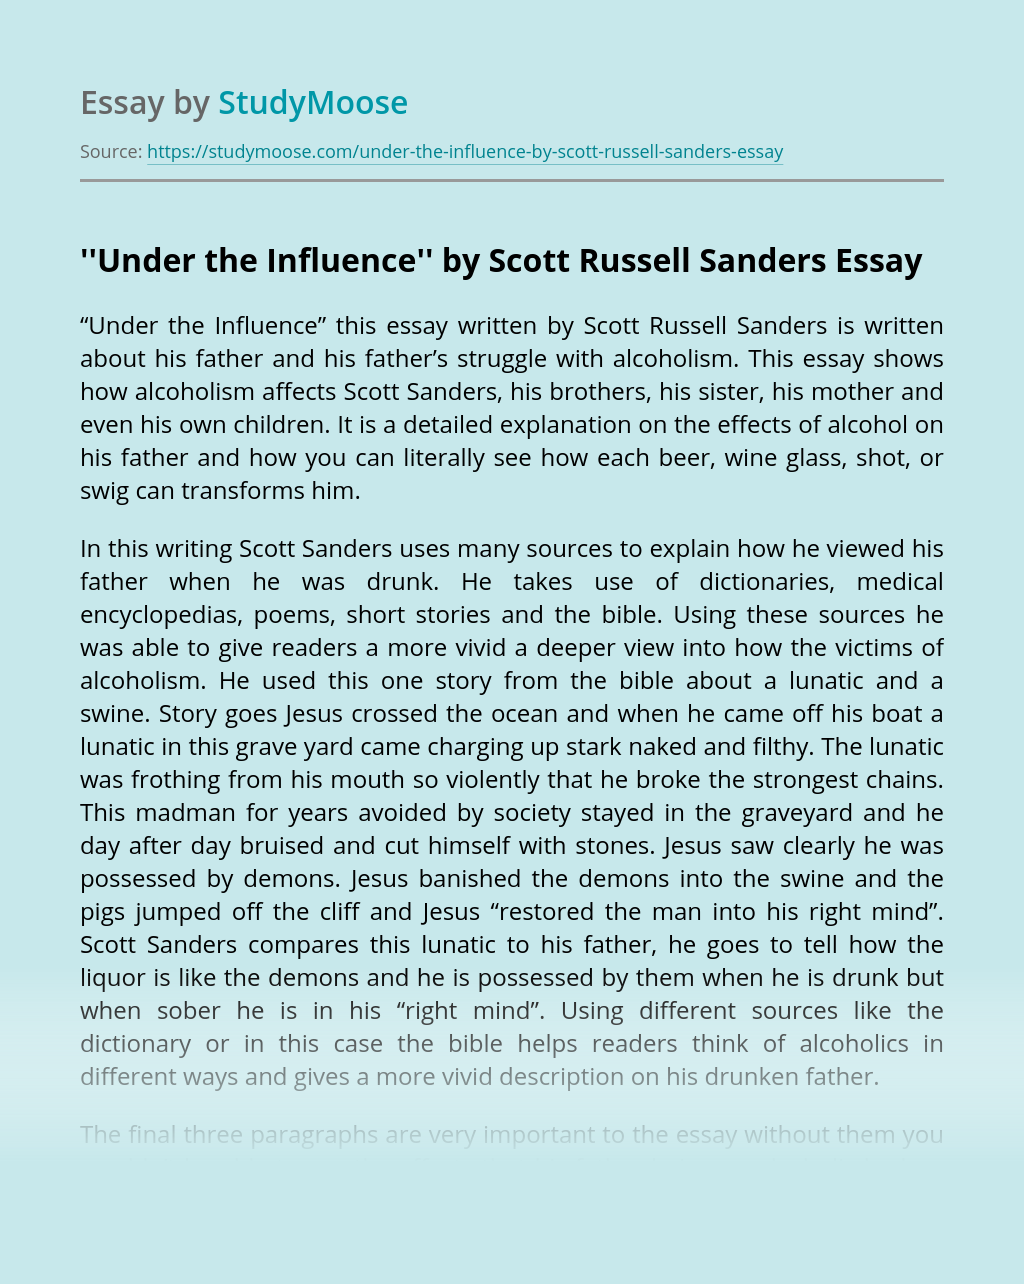 ''Under the Influence'' by Scott Russell Sanders